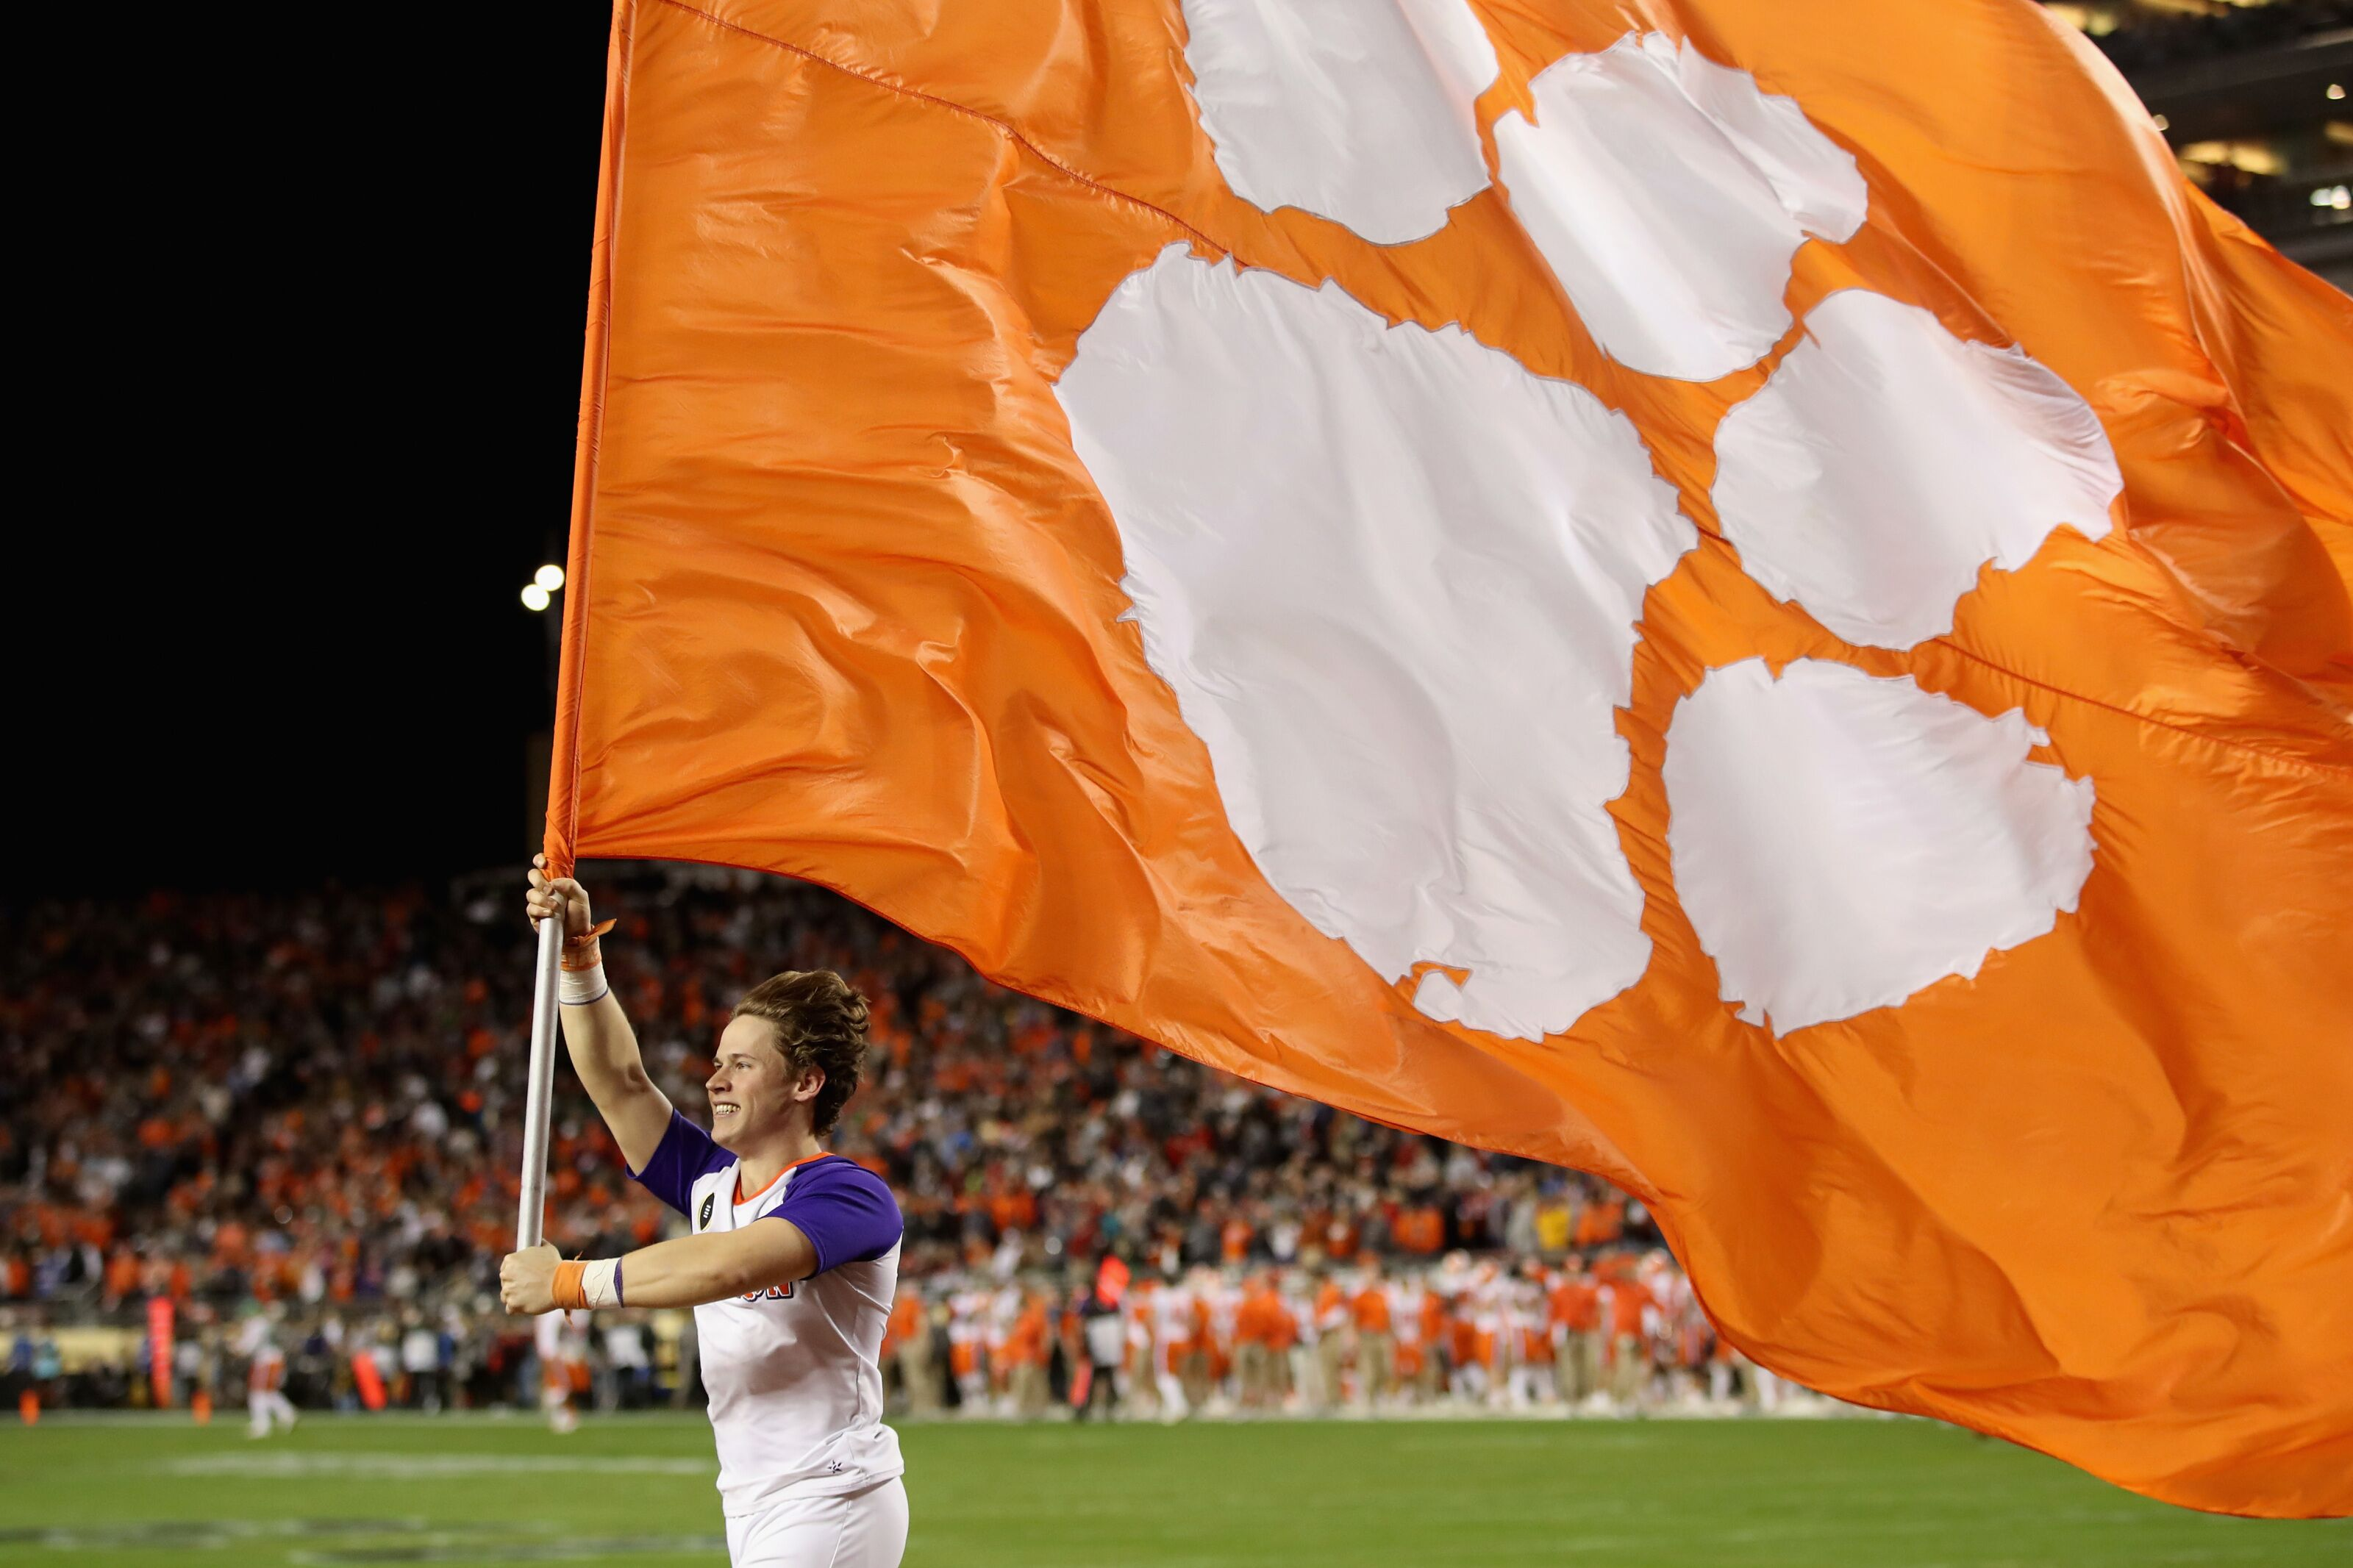 Clemson Football: Tigers get No. 1 QB, No. 1 overall player in latest predictions